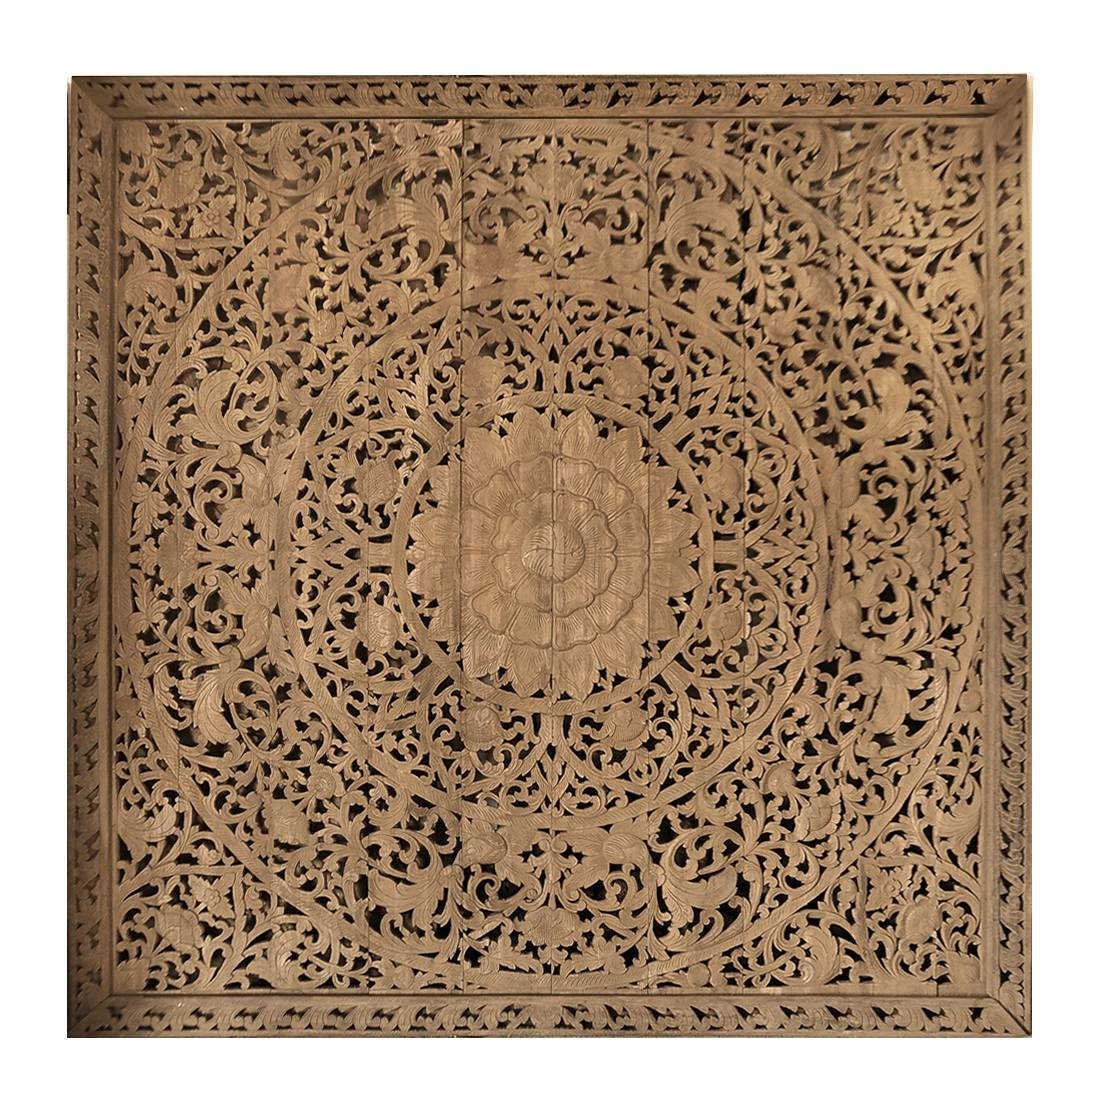 Large Grand Carved Wooden Wall Art Or Ceiling Panel – Siam Sawadee Within 2017 Wood Carved Wall Art Panels (View 15 of 25)